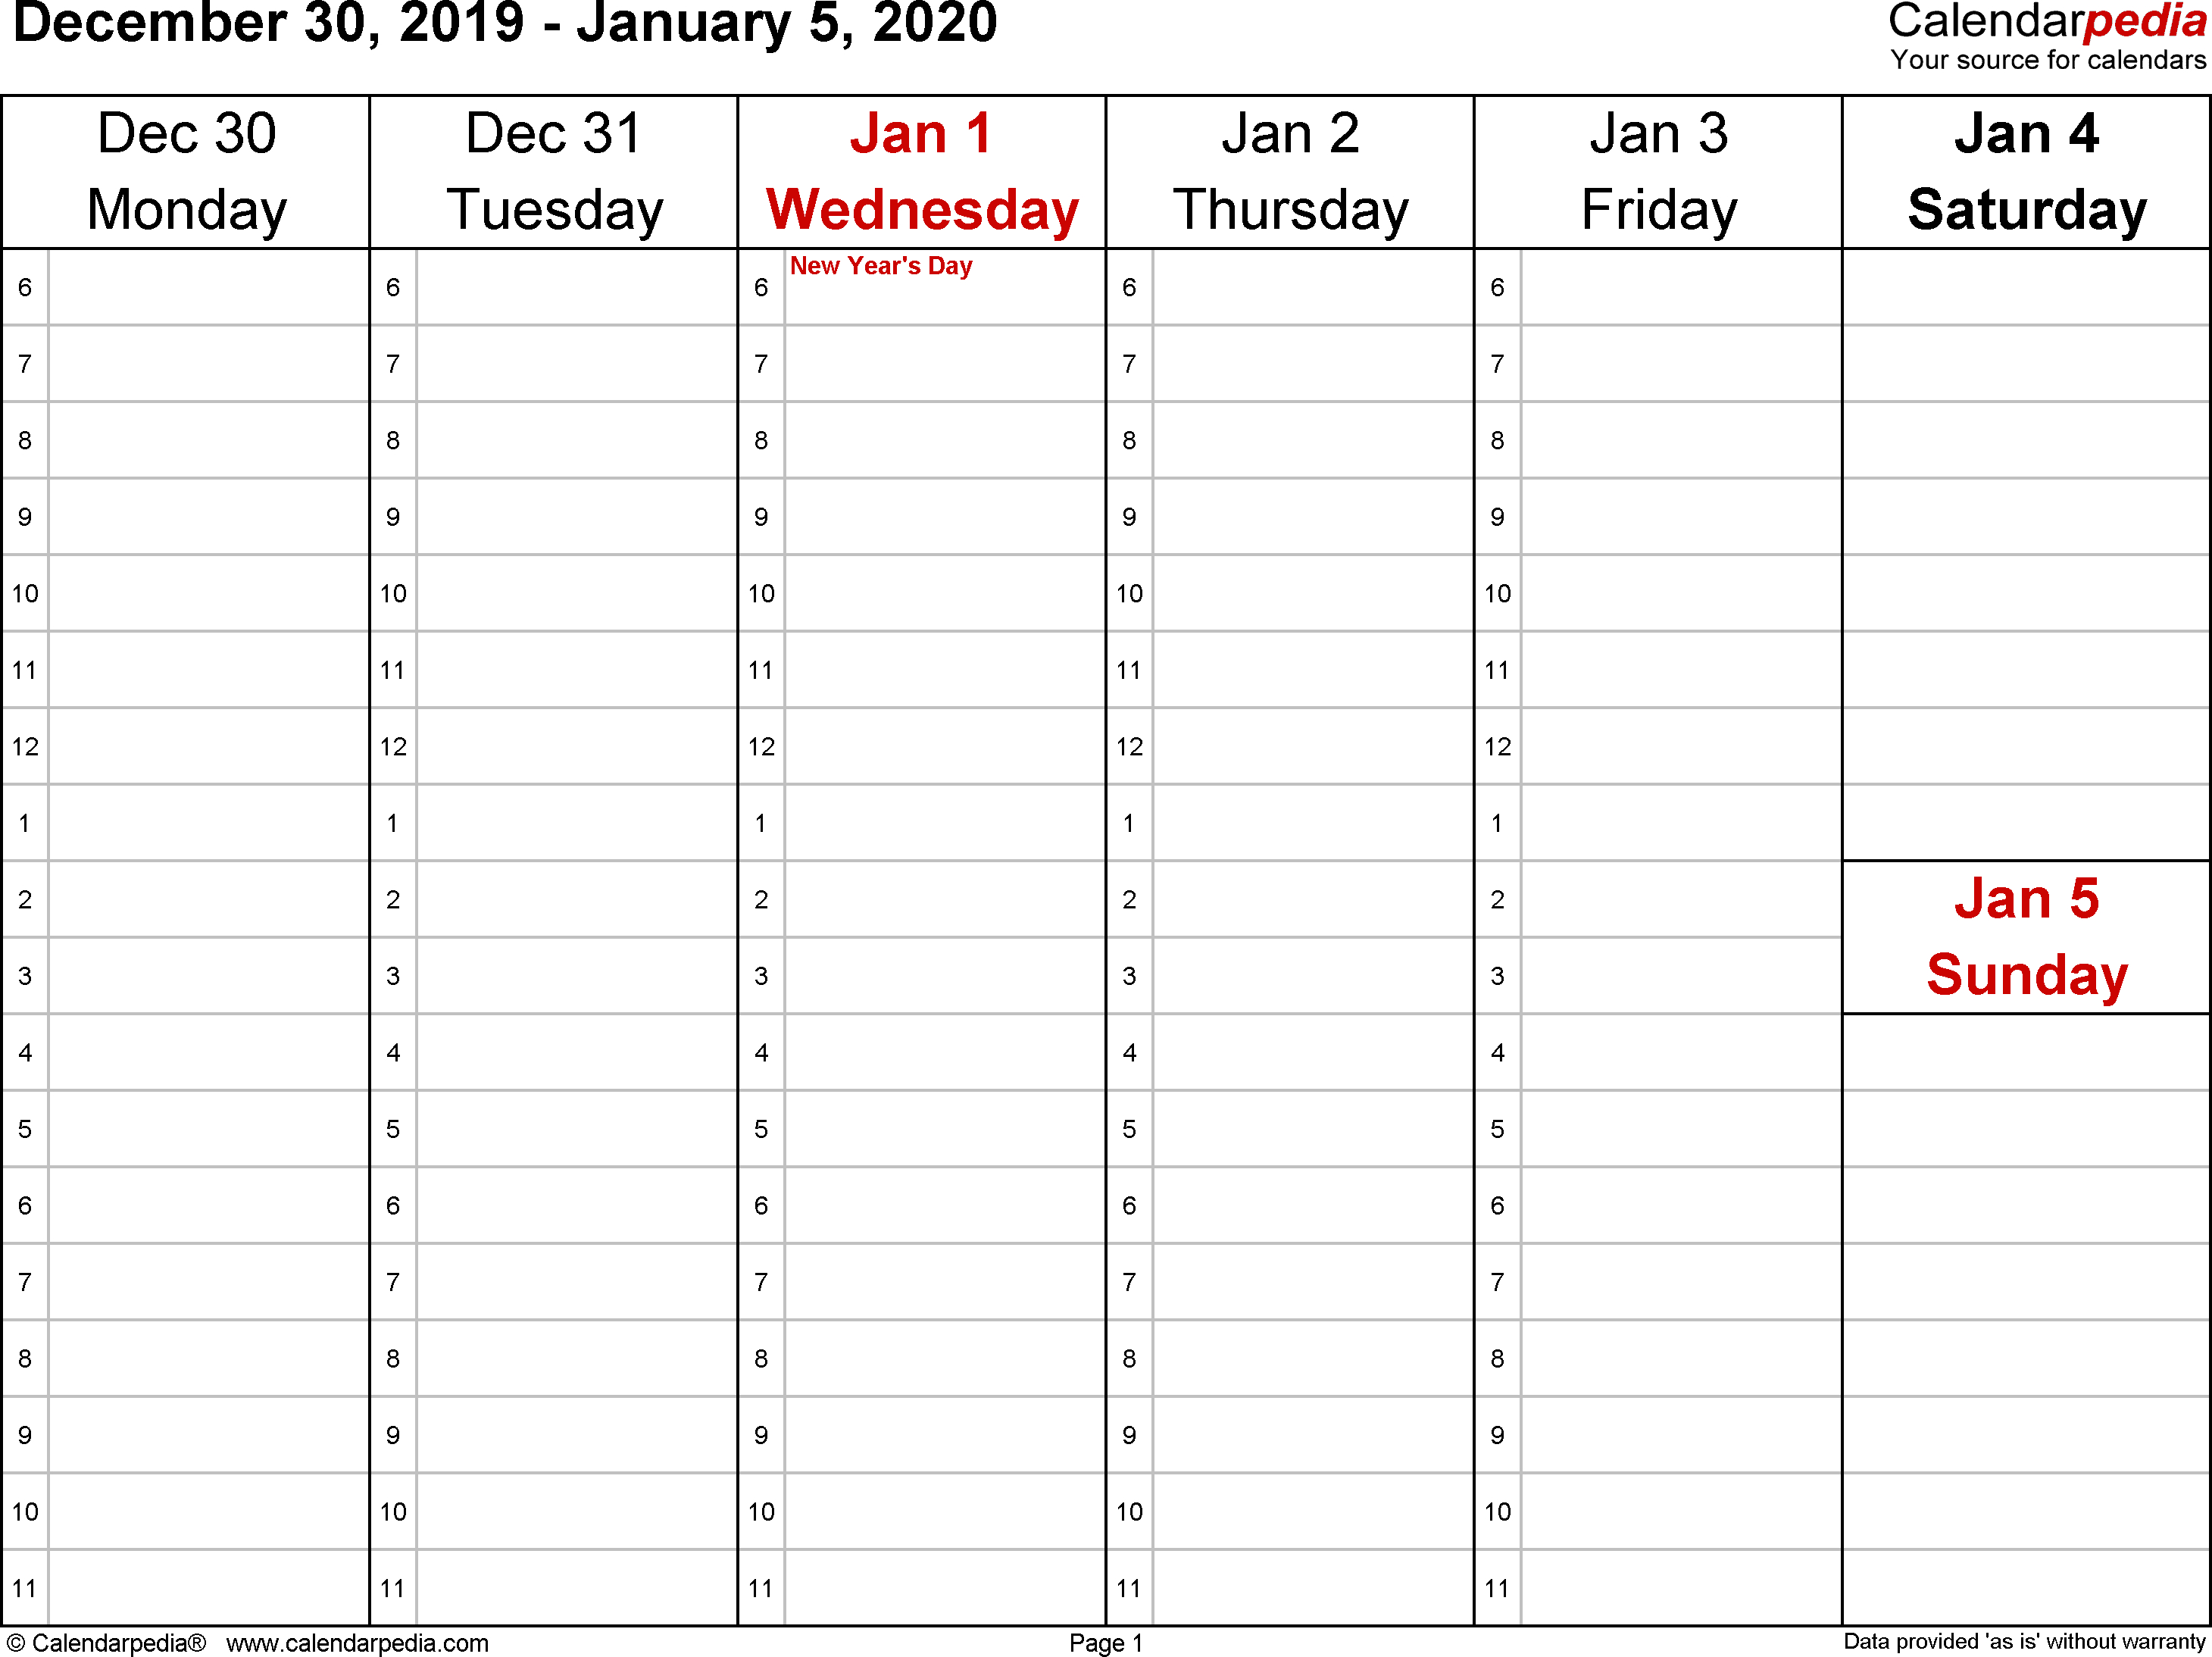 Weekly Calendar 2020 For Pdf - 12 Free Printable Templates for 2020 Calendar For 5.5 X 8.5